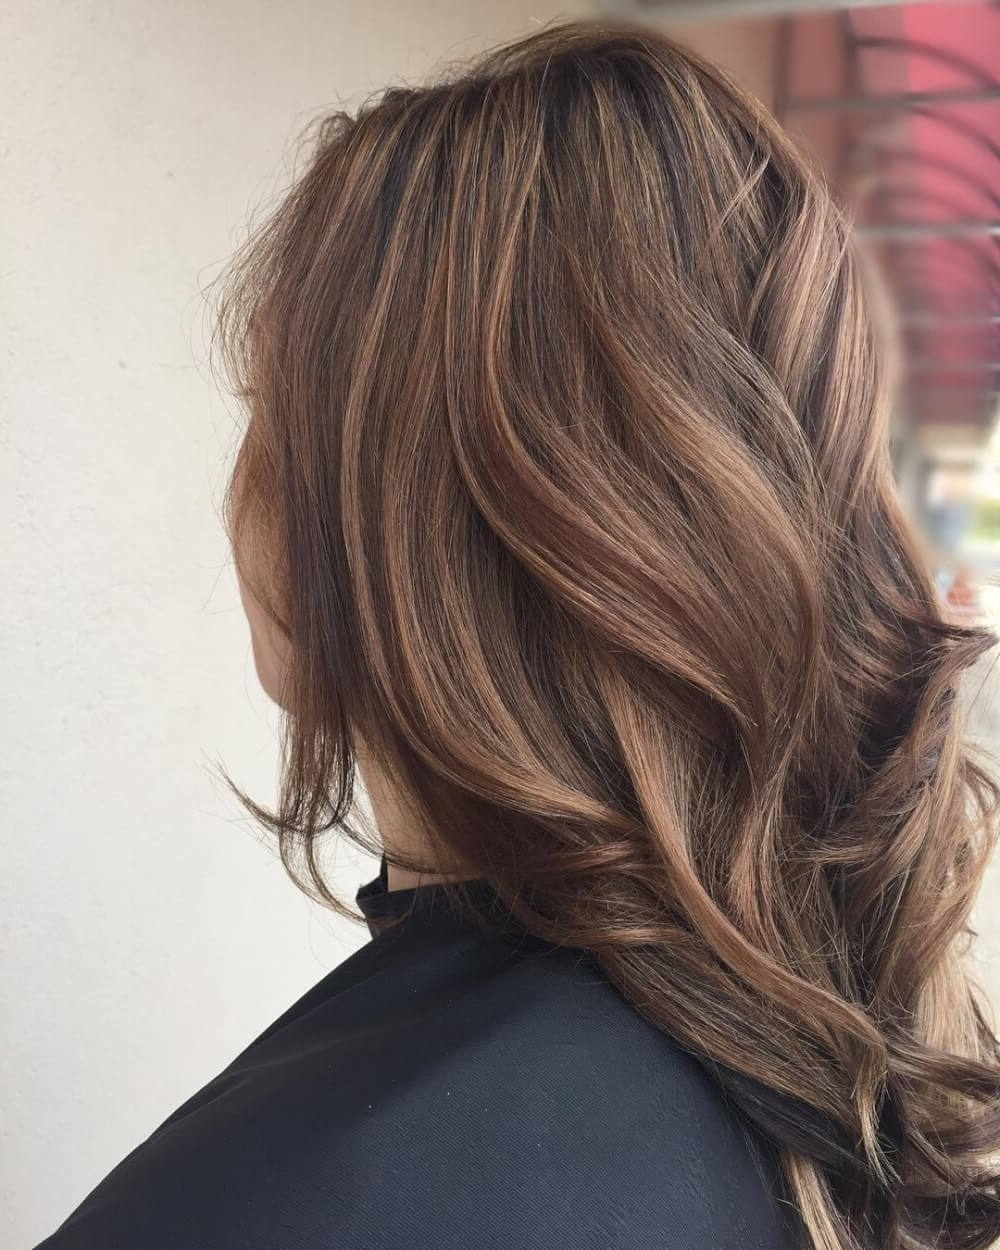 34 Light Brown Hair Colors That Are Blowing Up In 2018 Within Recent Maple Bronde Hairstyles With Highlights (View 5 of 20)